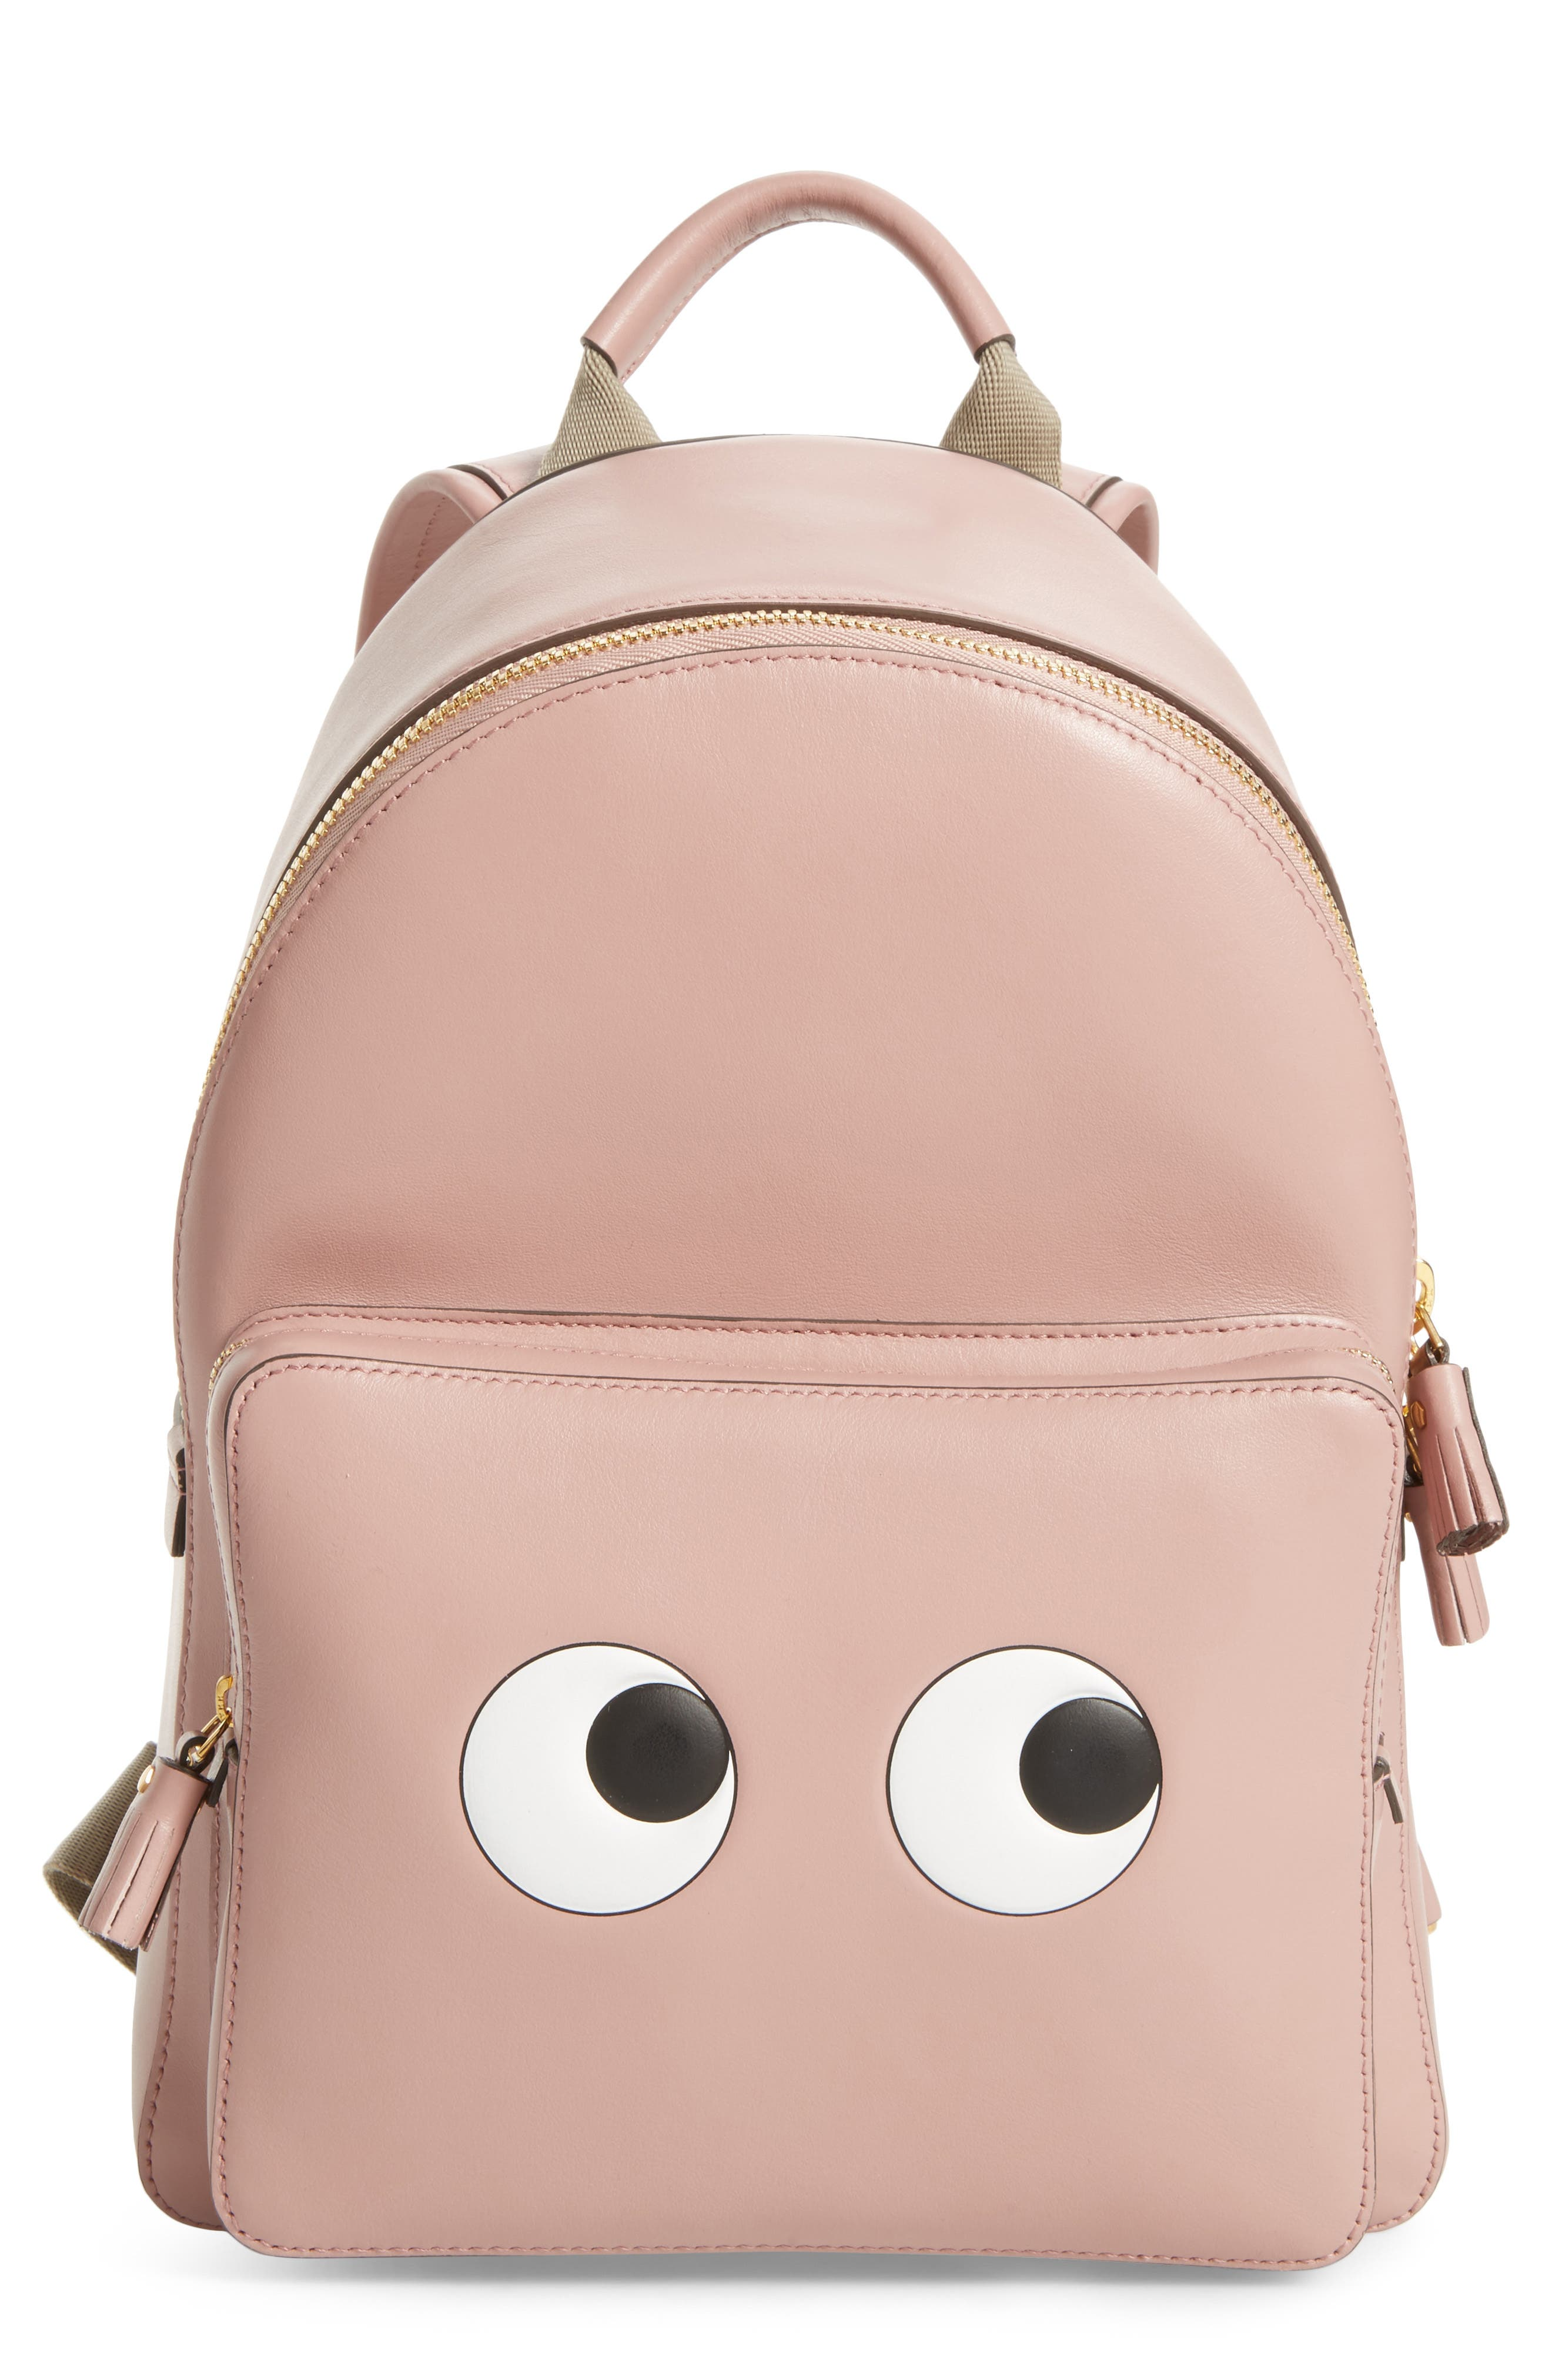 ANYA HINDMARCH Eyes Mini Leather Backpack, Main, color, 650